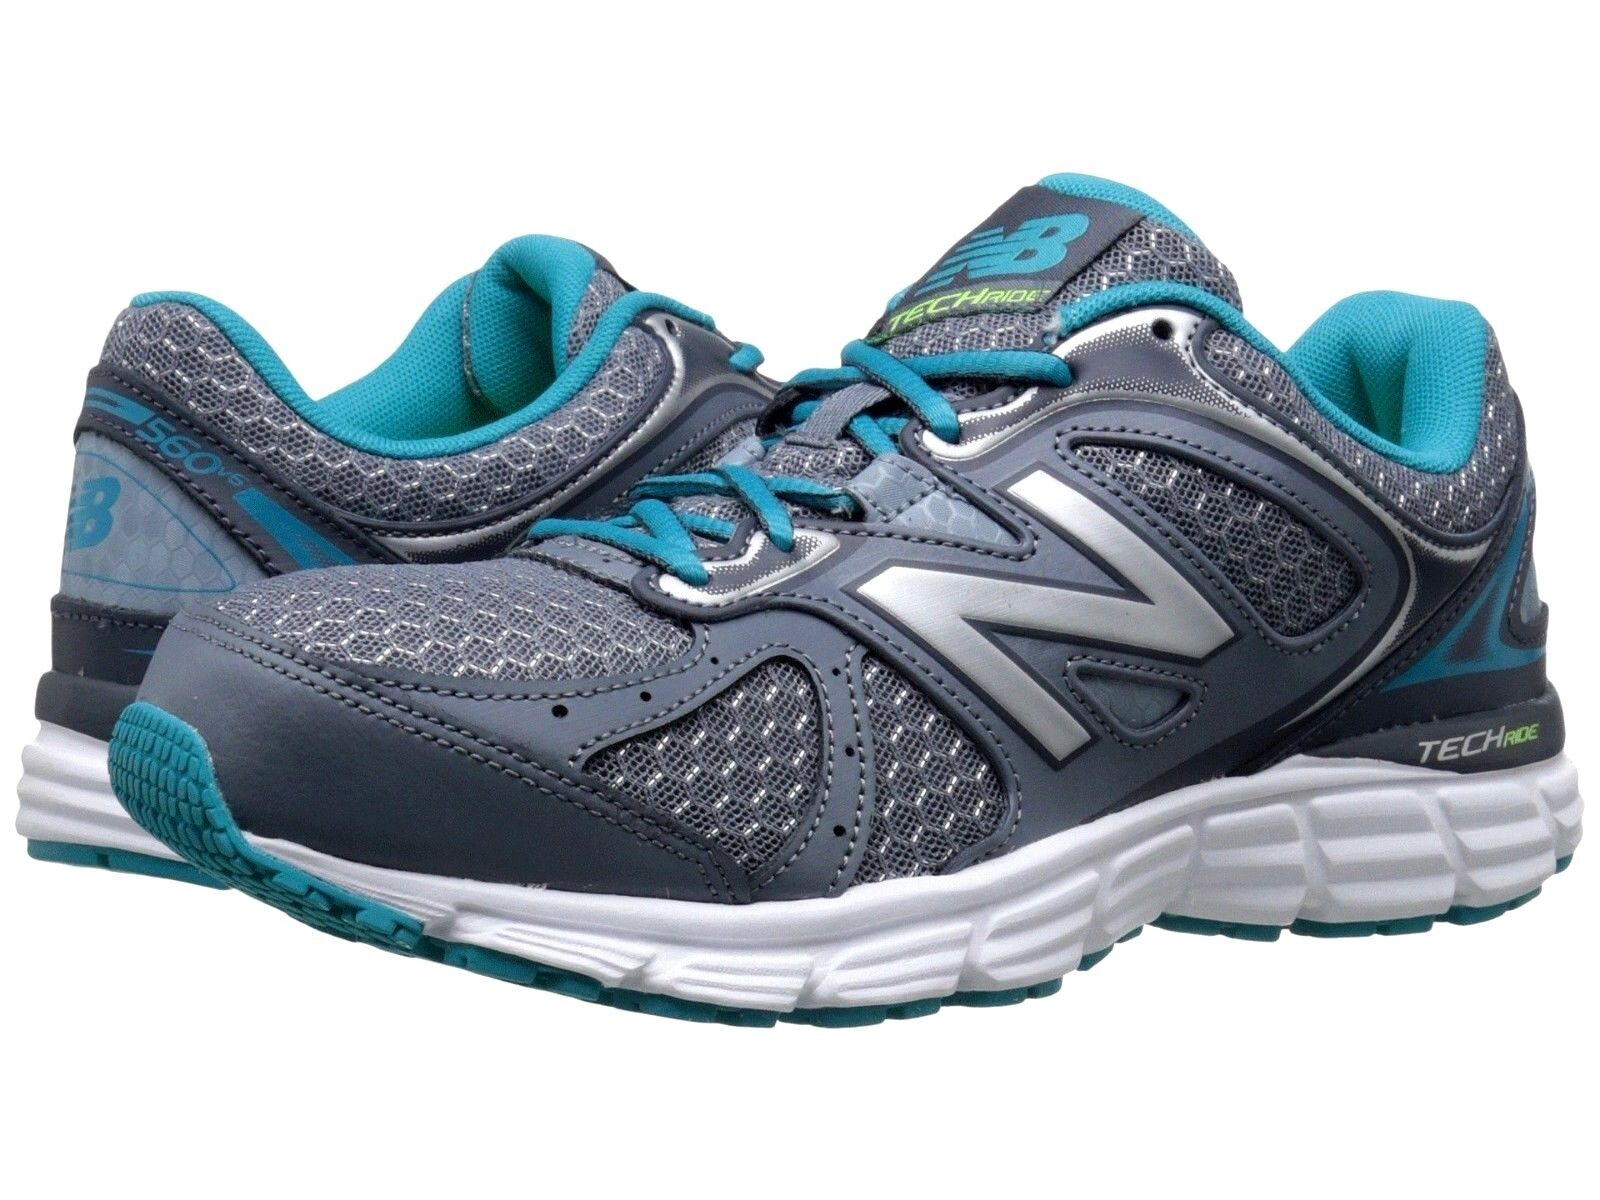 New NEW BALANCE Women's 560LG6 Running shoes Size 6 (M)  T670N  100% Authentic